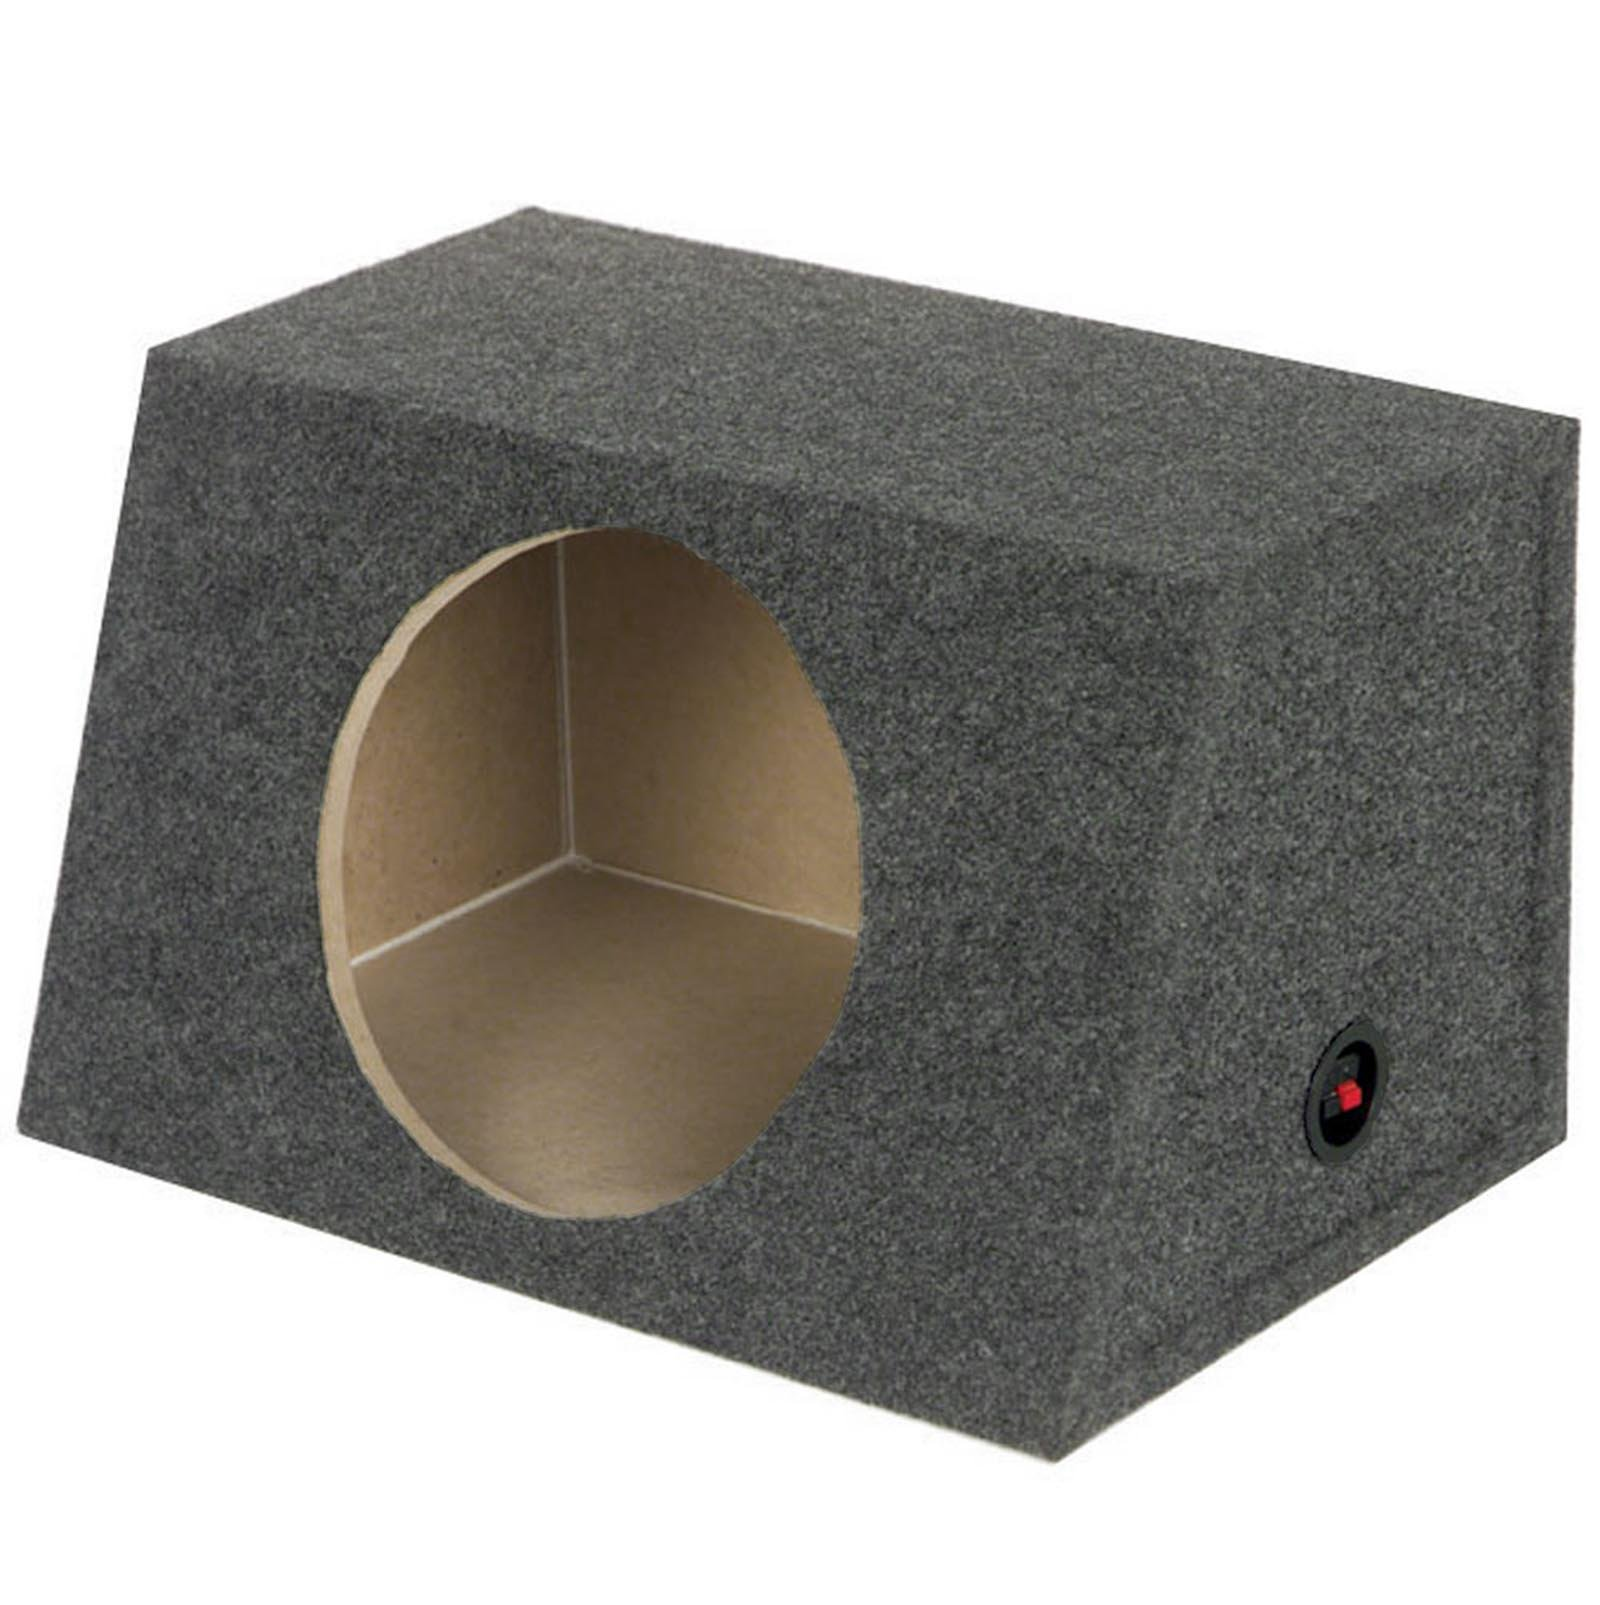 "NEW QPOWER Heavy Duty Sealed Front-Angle Single 15"" Subwoofer Enclosure Sub Box"